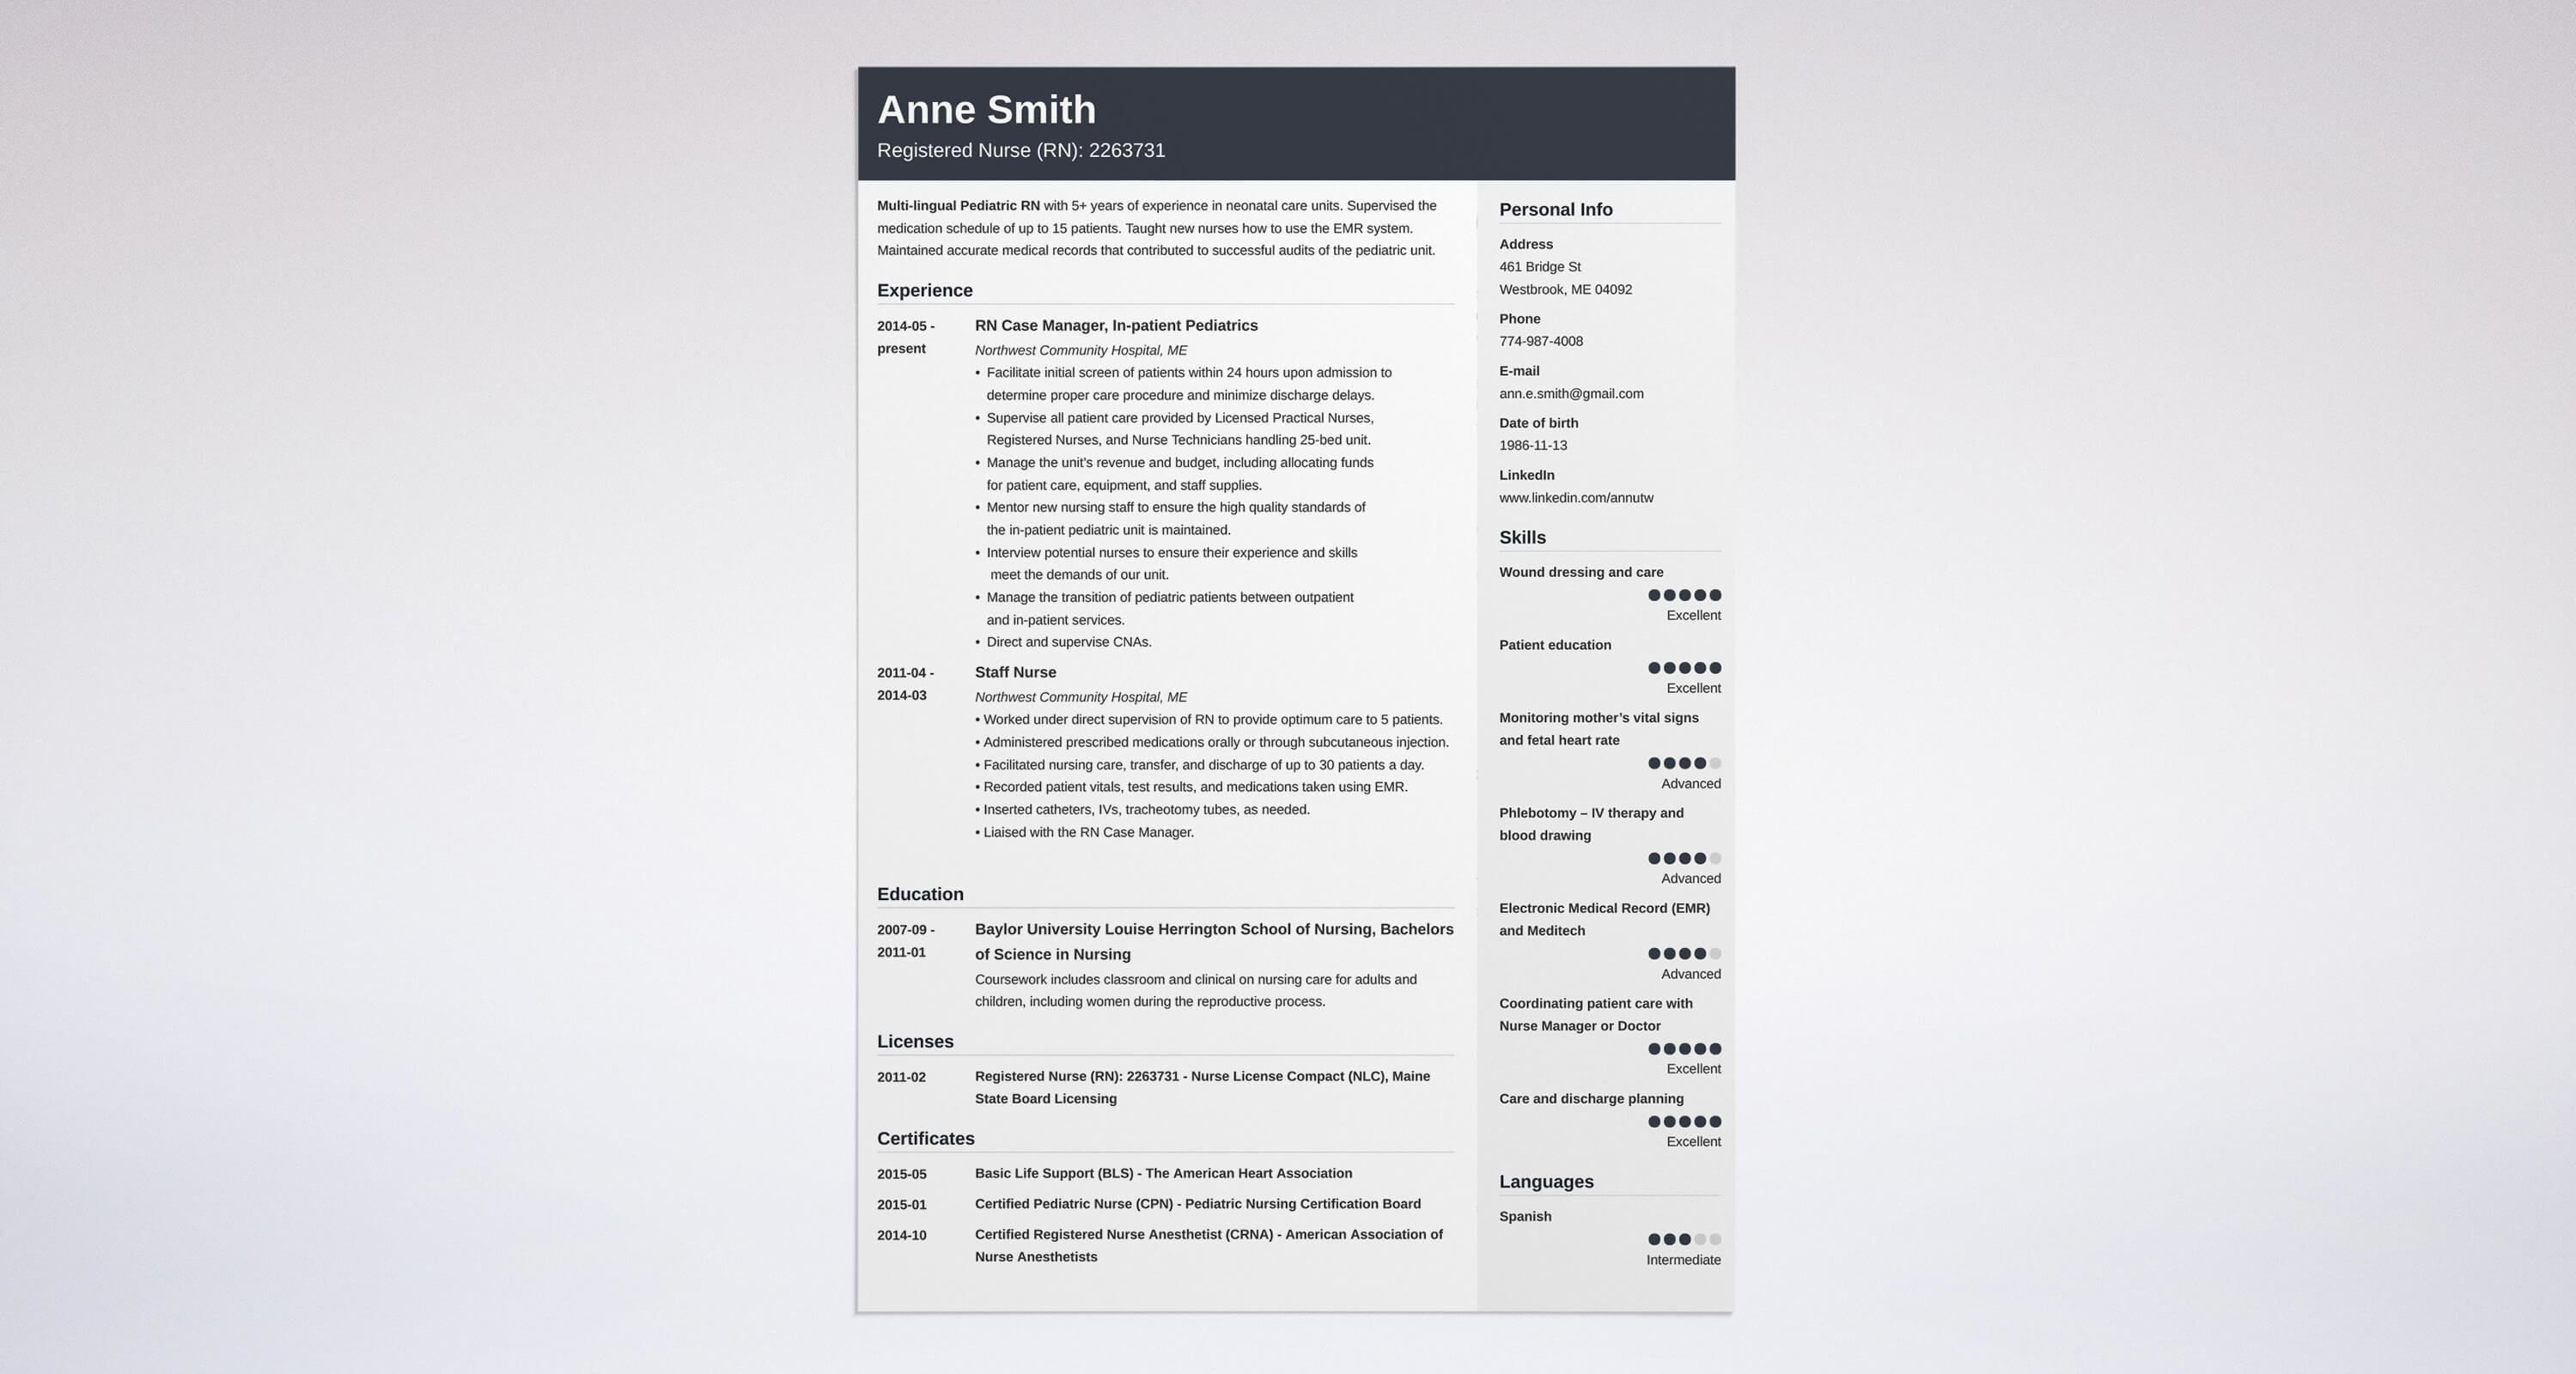 nursing resume template guide examples of experience skills